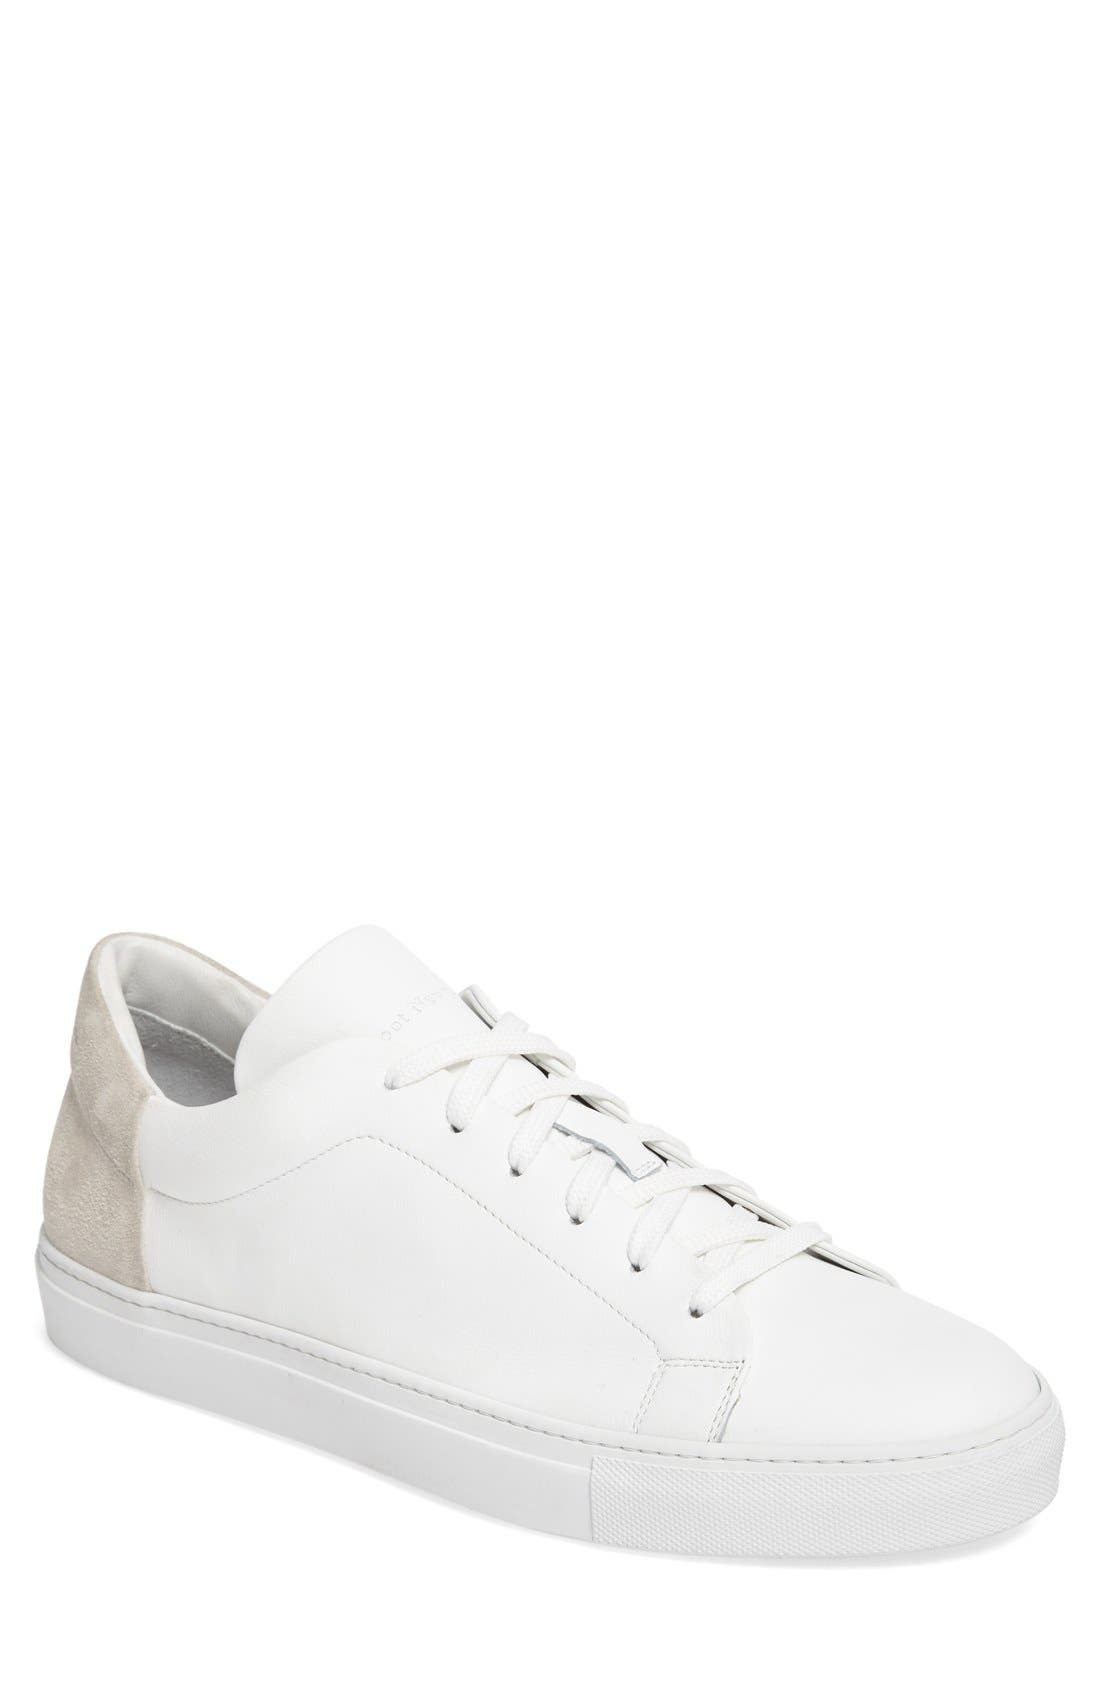 Main Image - To Boot New York Huston Sneaker (Men)